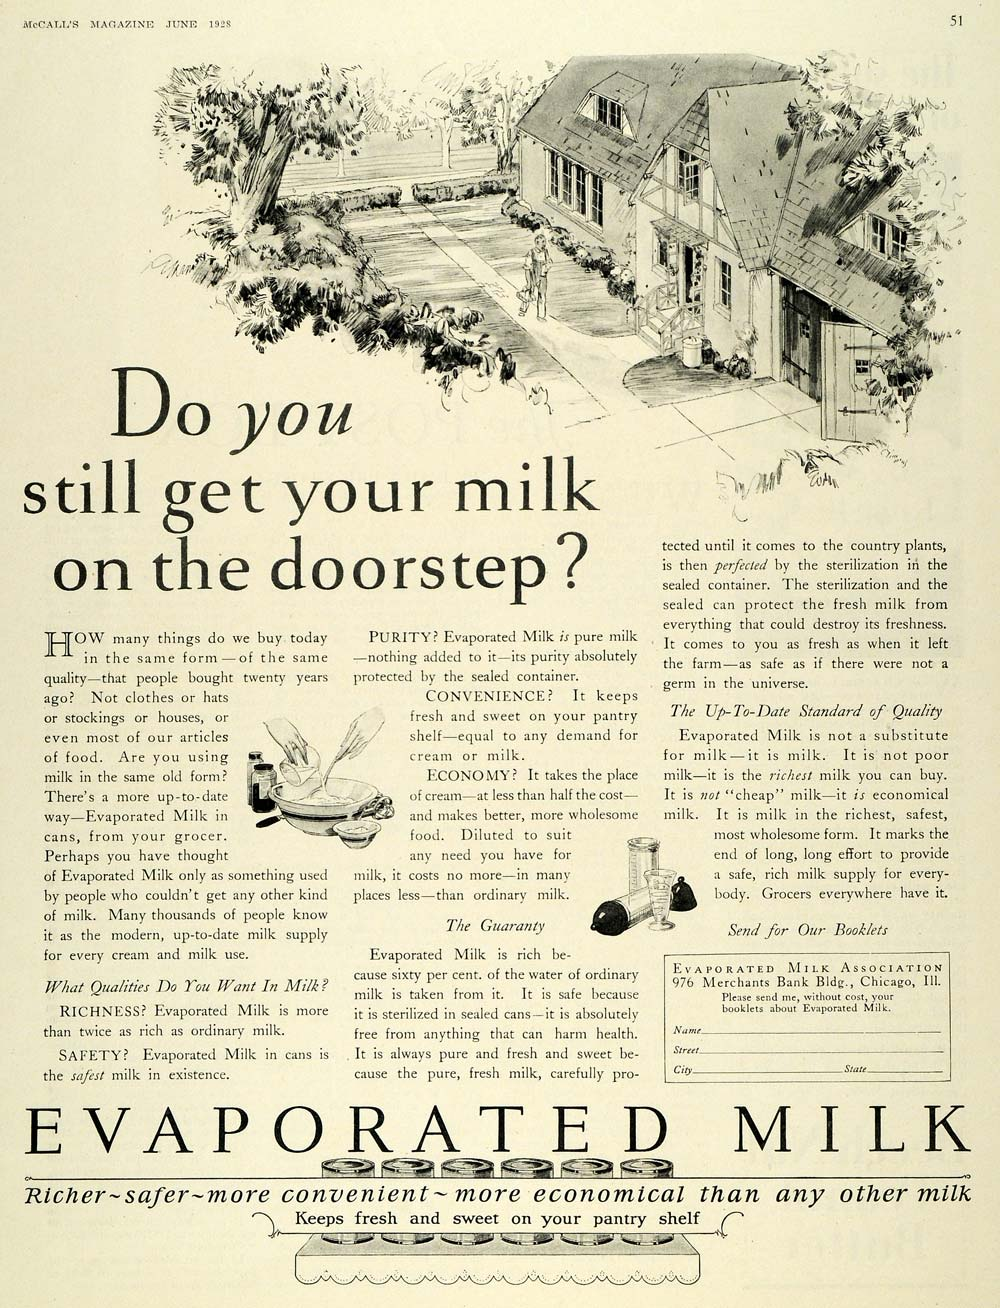 1928 Ad Evaporated Milk Association Canned Dairy Drink - ORIGINAL MCC4